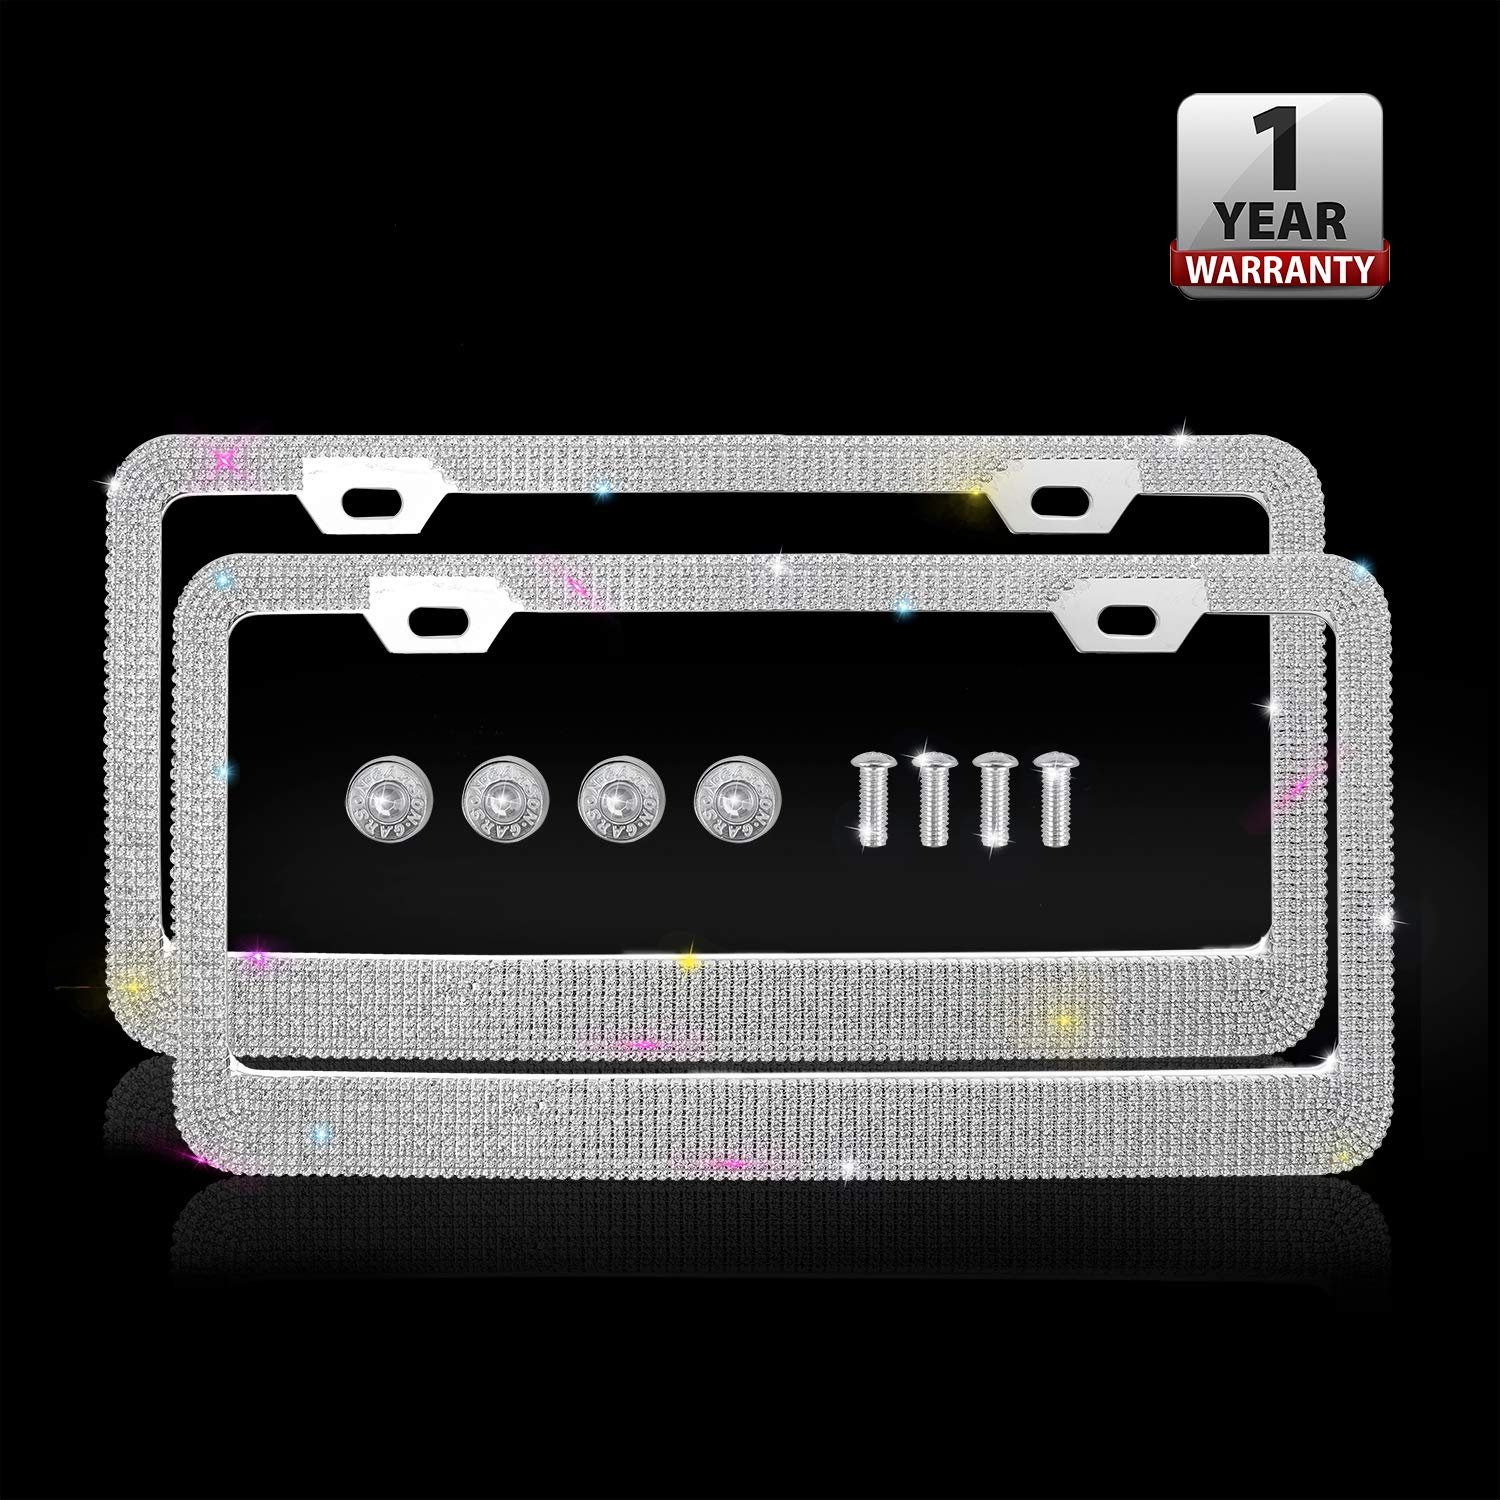 Luxury Handmade Waterproof Glitter Rhinestone Crystal Premium Stainless Steel Licence Plate with Anti-Theft Screw Caps for Front and Back License Indeedbuy Bling License Plate Frames